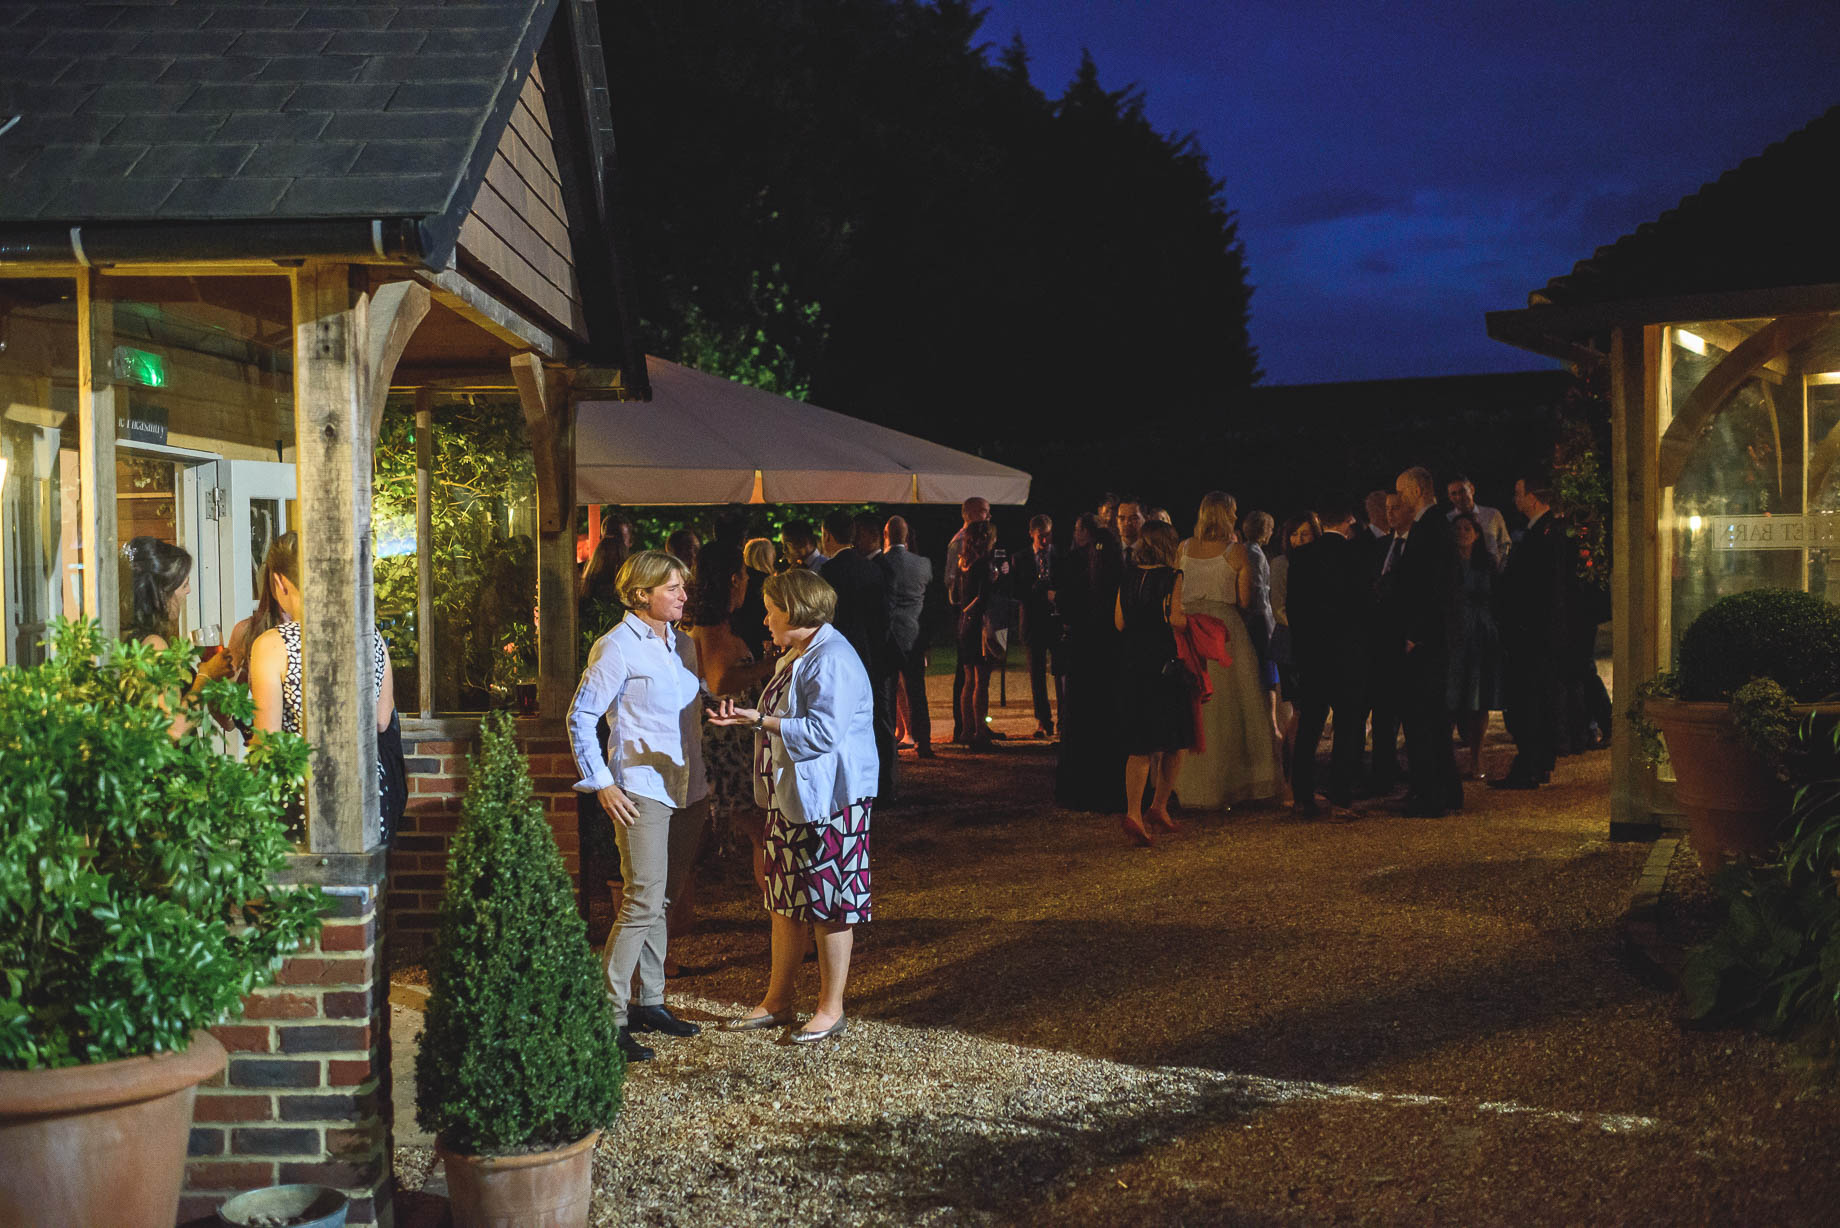 Gate Street Barn wedding photography - Guy Collier - Claire and Andy (175 of 192)